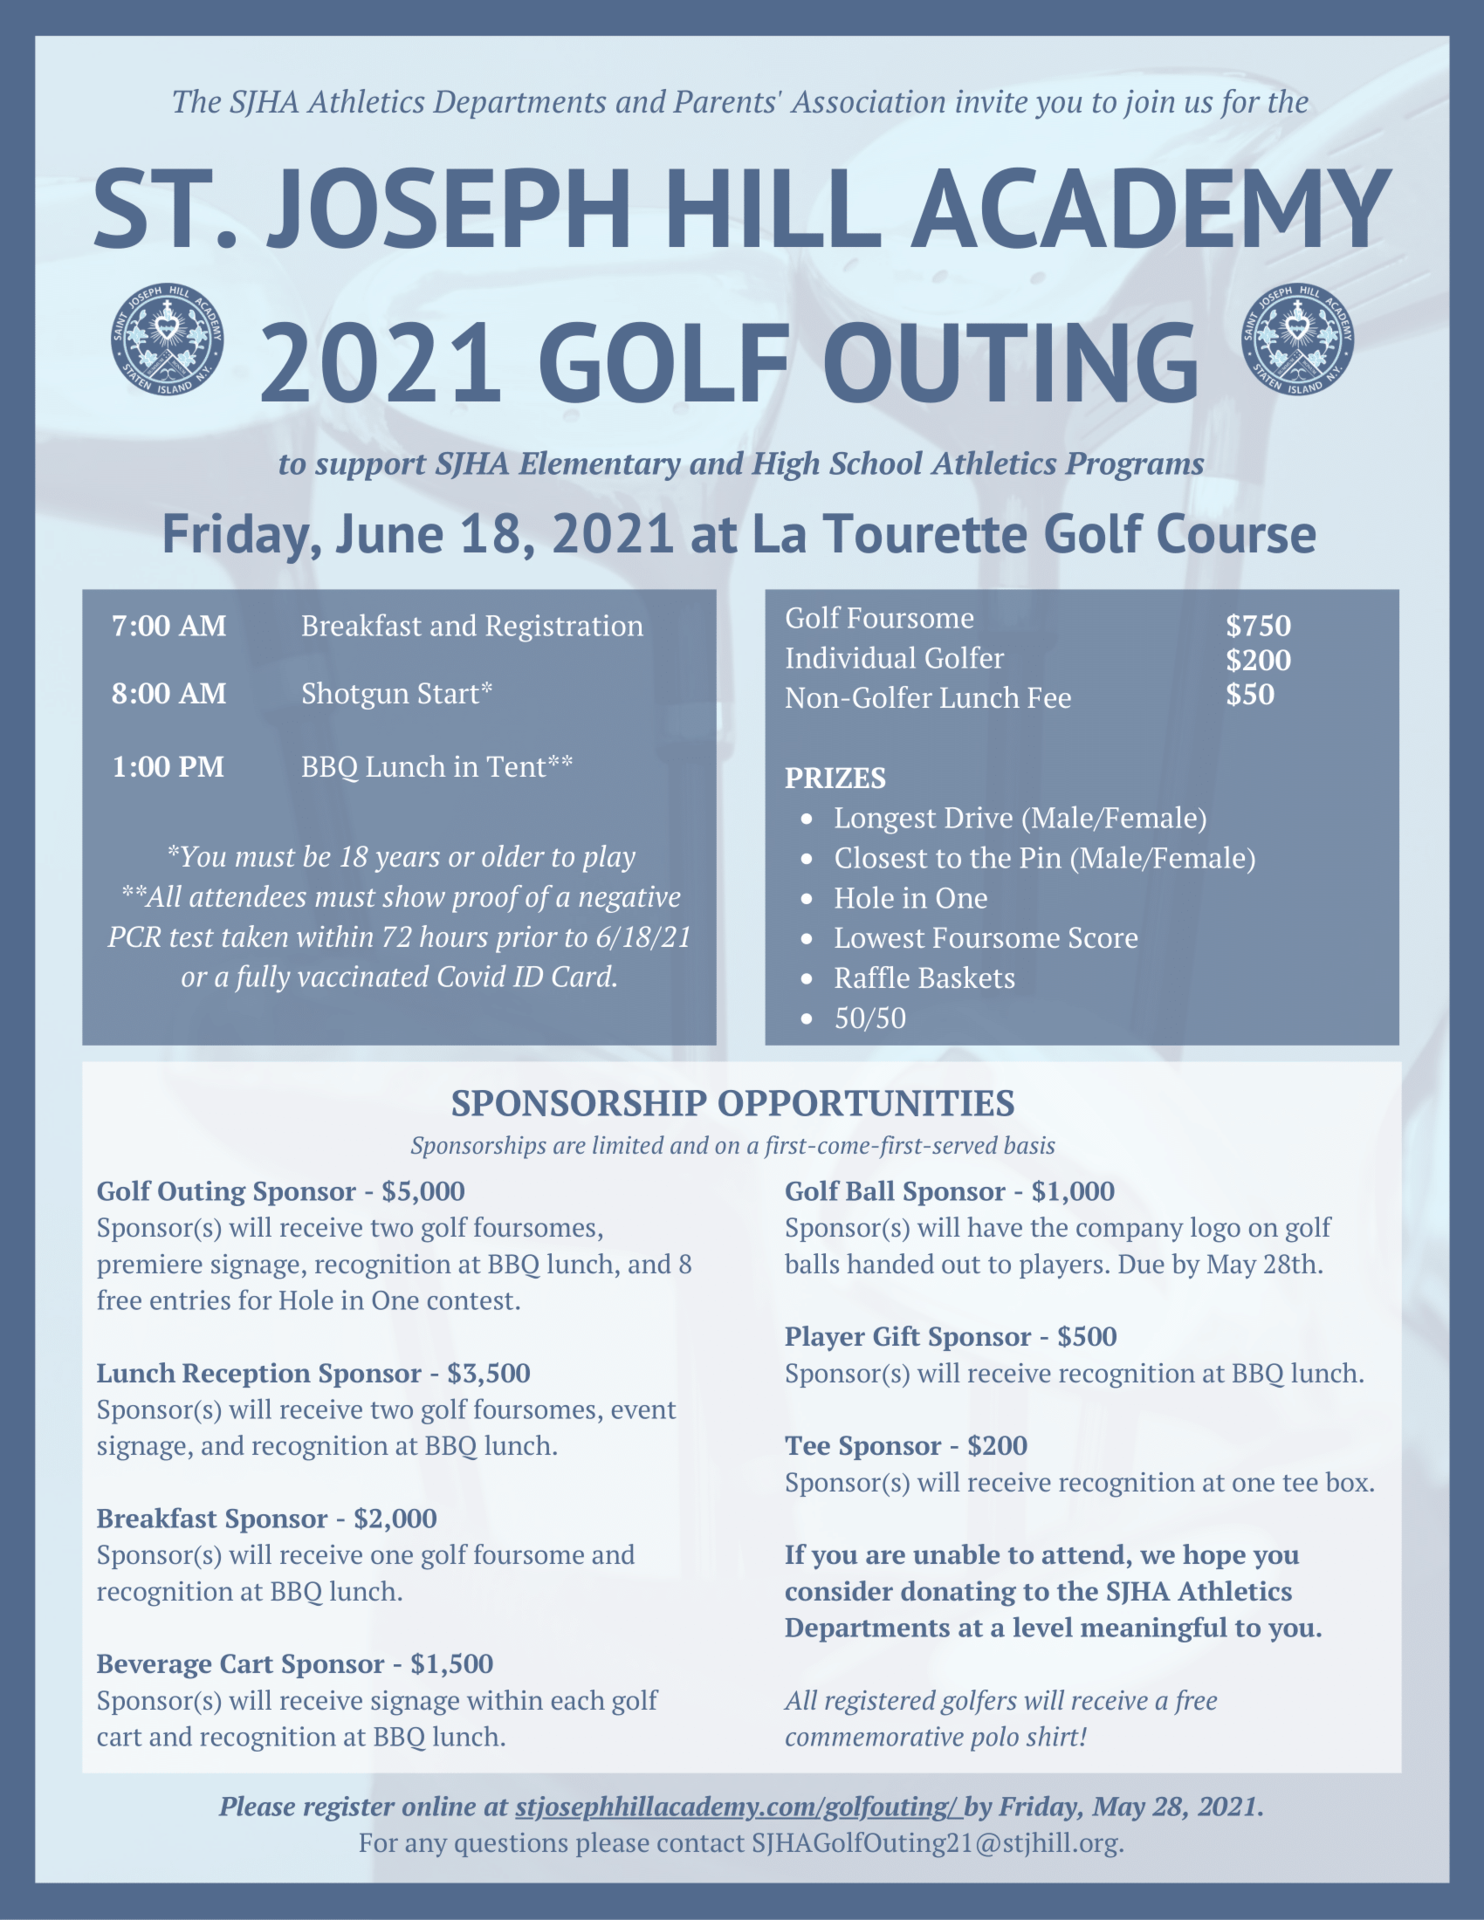 June 18 is the SJHA Golf Outing